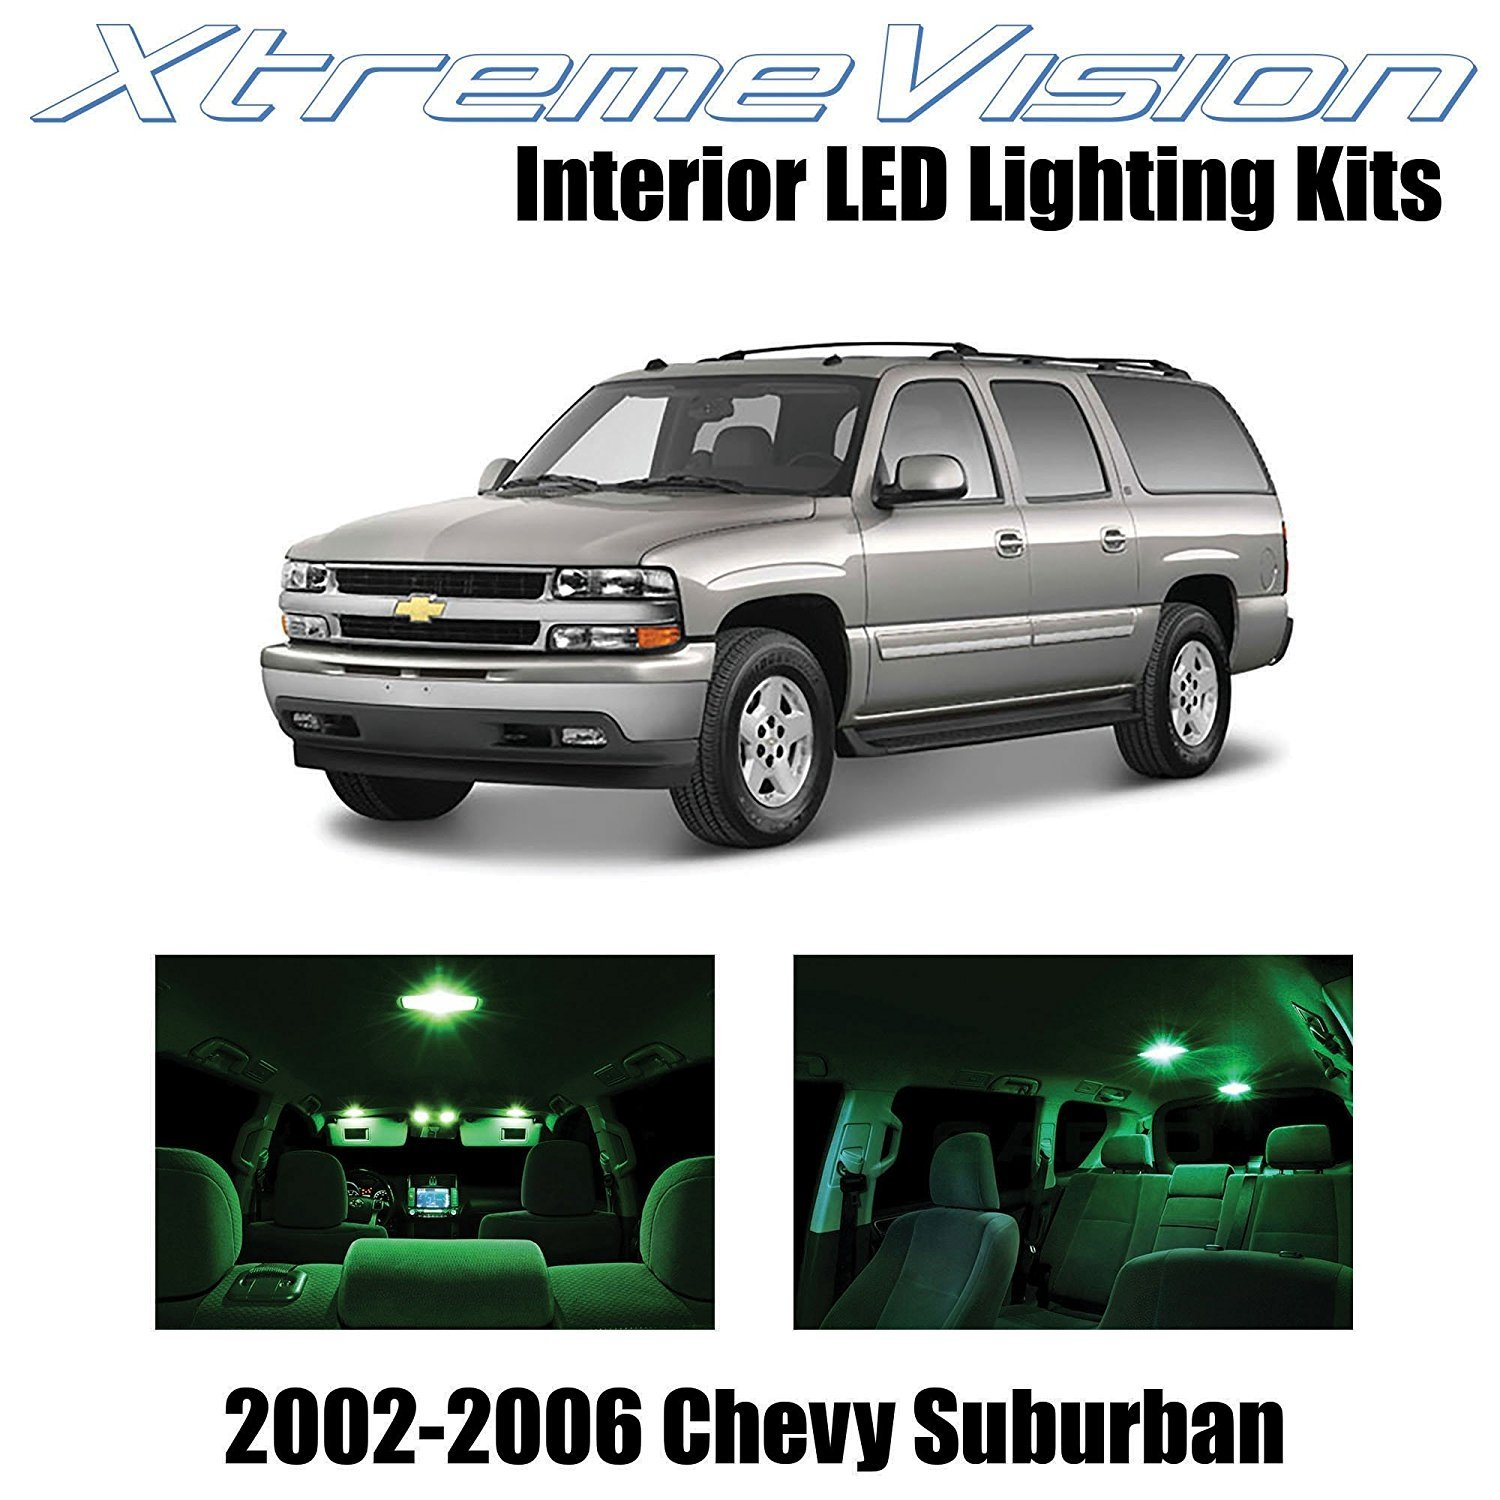 XtremeVision LED for Chevy Suburban 2002-2006 (10 Pieces) Green Premium Interior LED Kit Package + Installation Tool